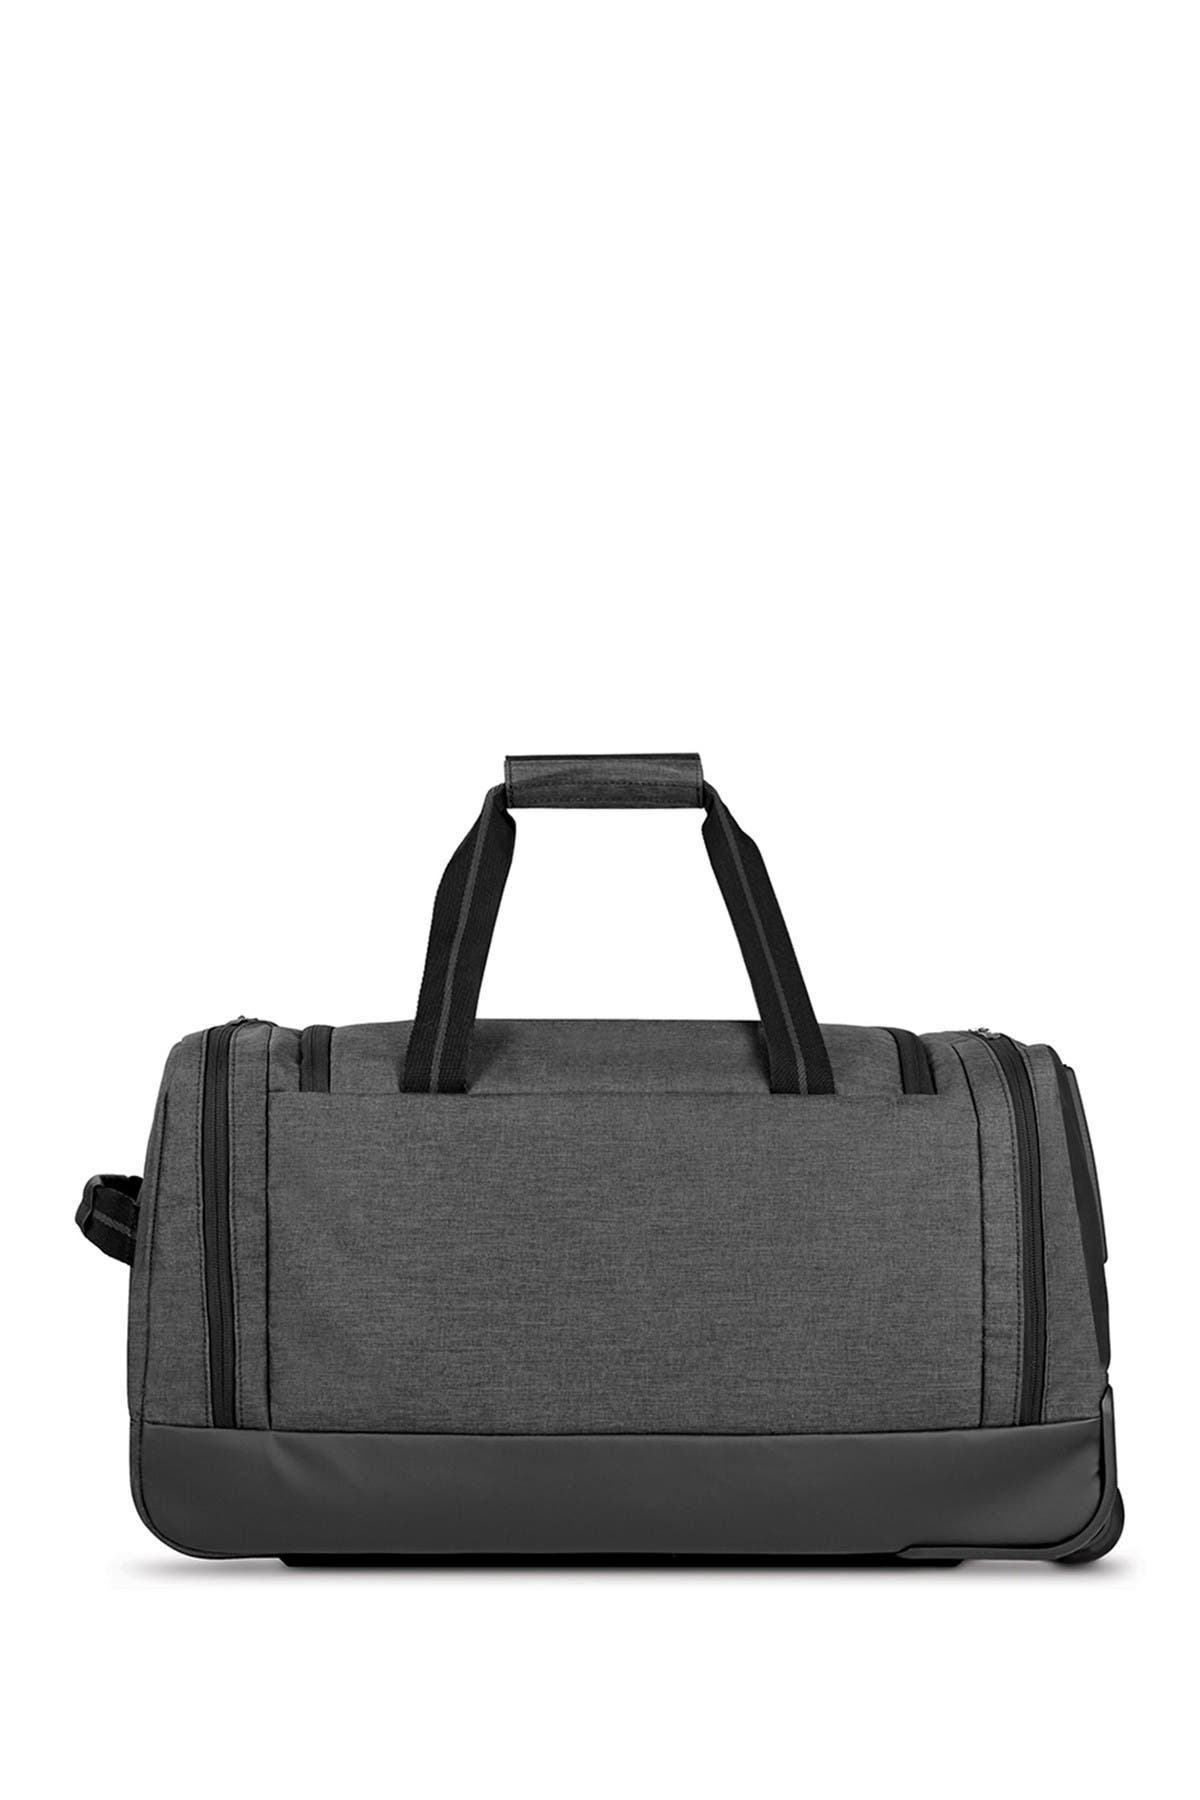 Image of SOLO NEW YORK Leroy Rolling Duffel